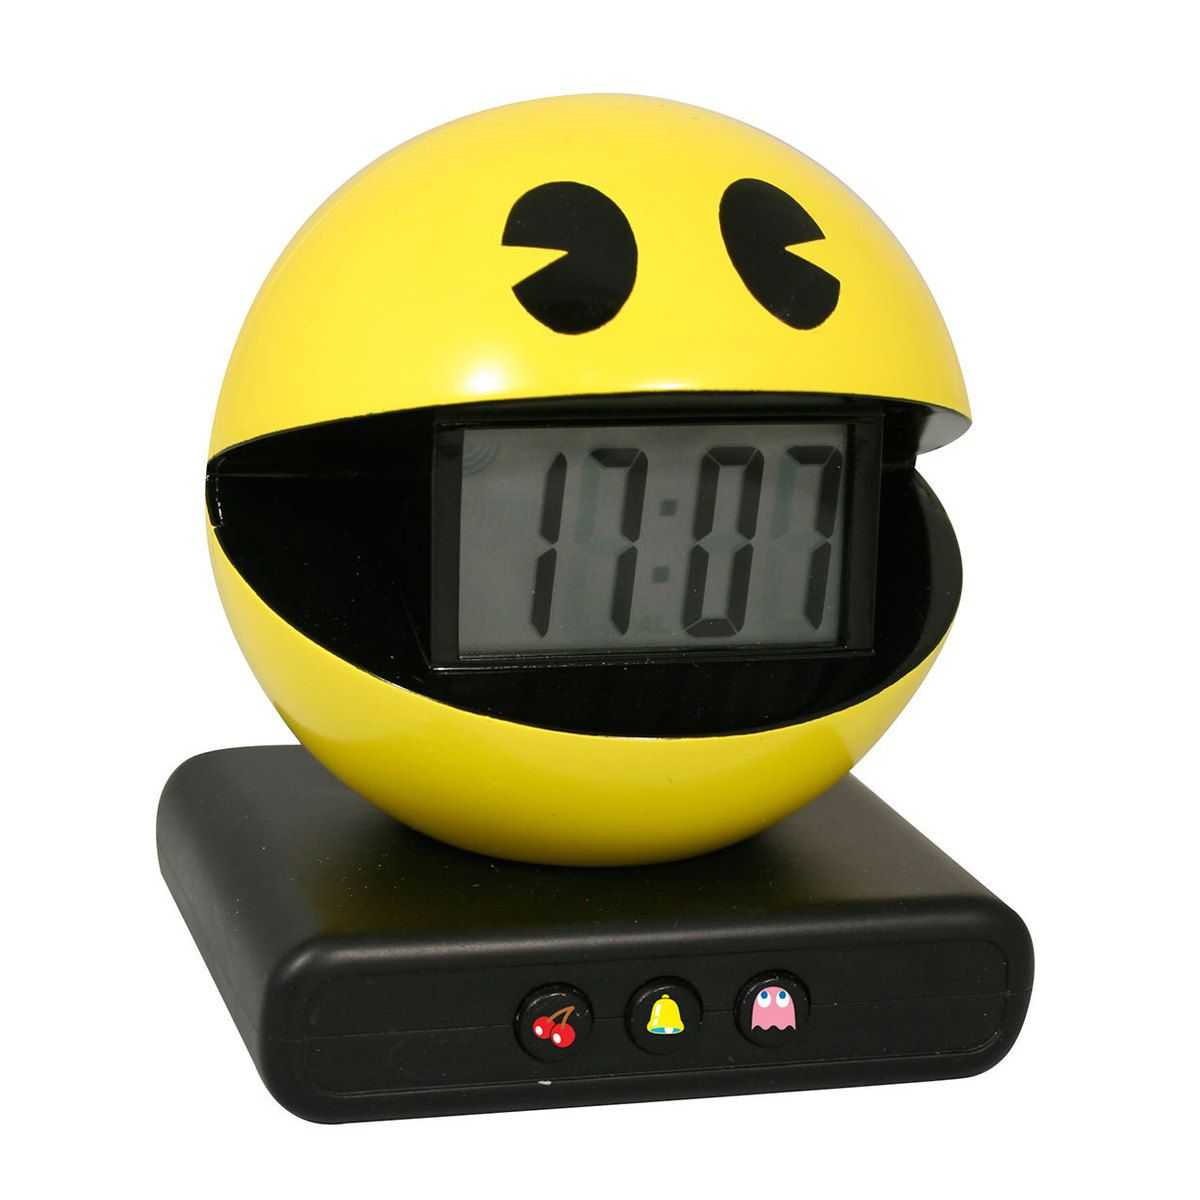 Digital Clock For Sale Unique Alarm Clocks For Sale